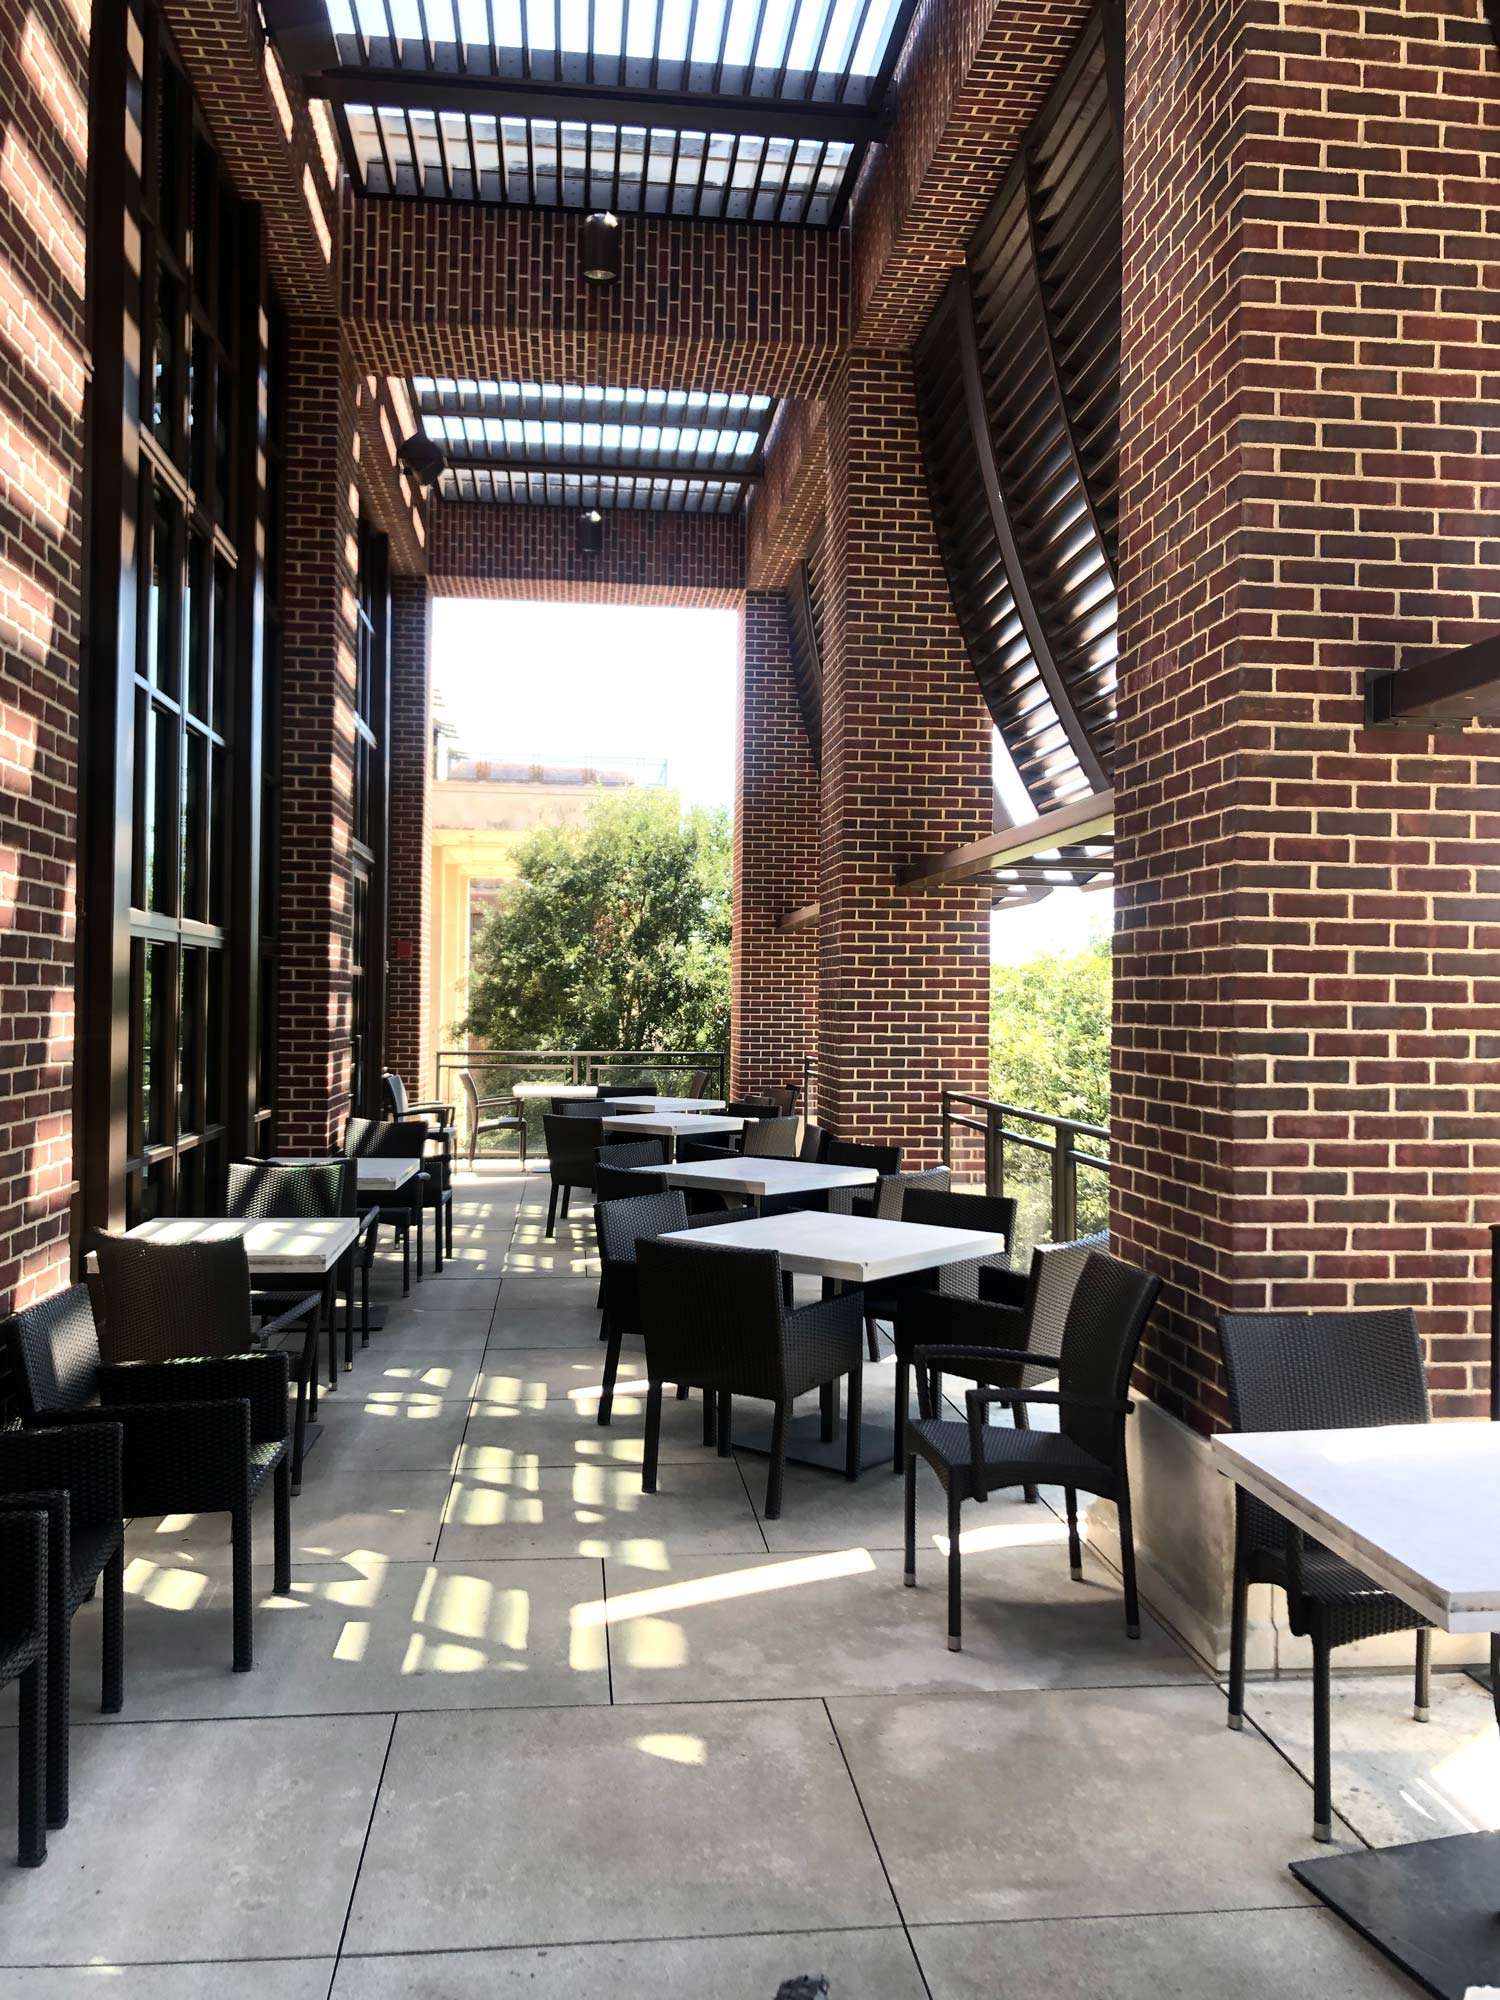 Cafe-43-patio-George W Bush Presidential Center.jpg